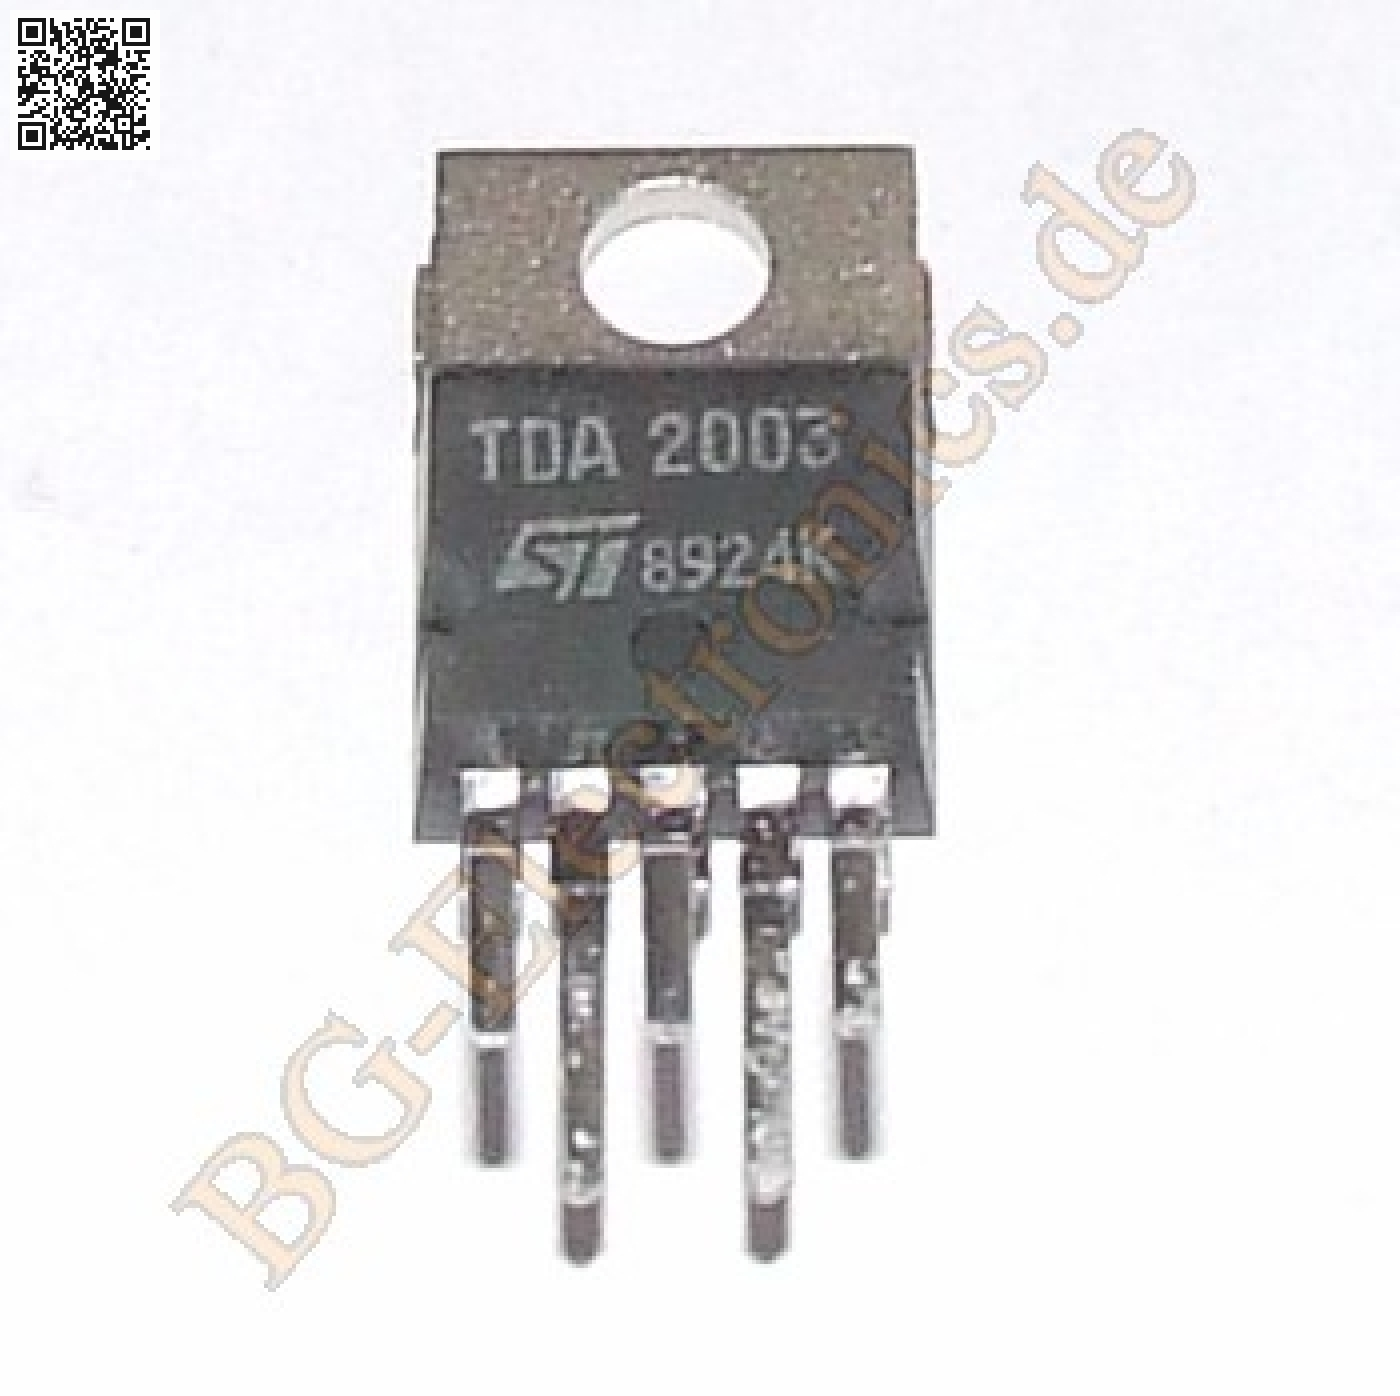 Tda2003 10w Power Amplifier